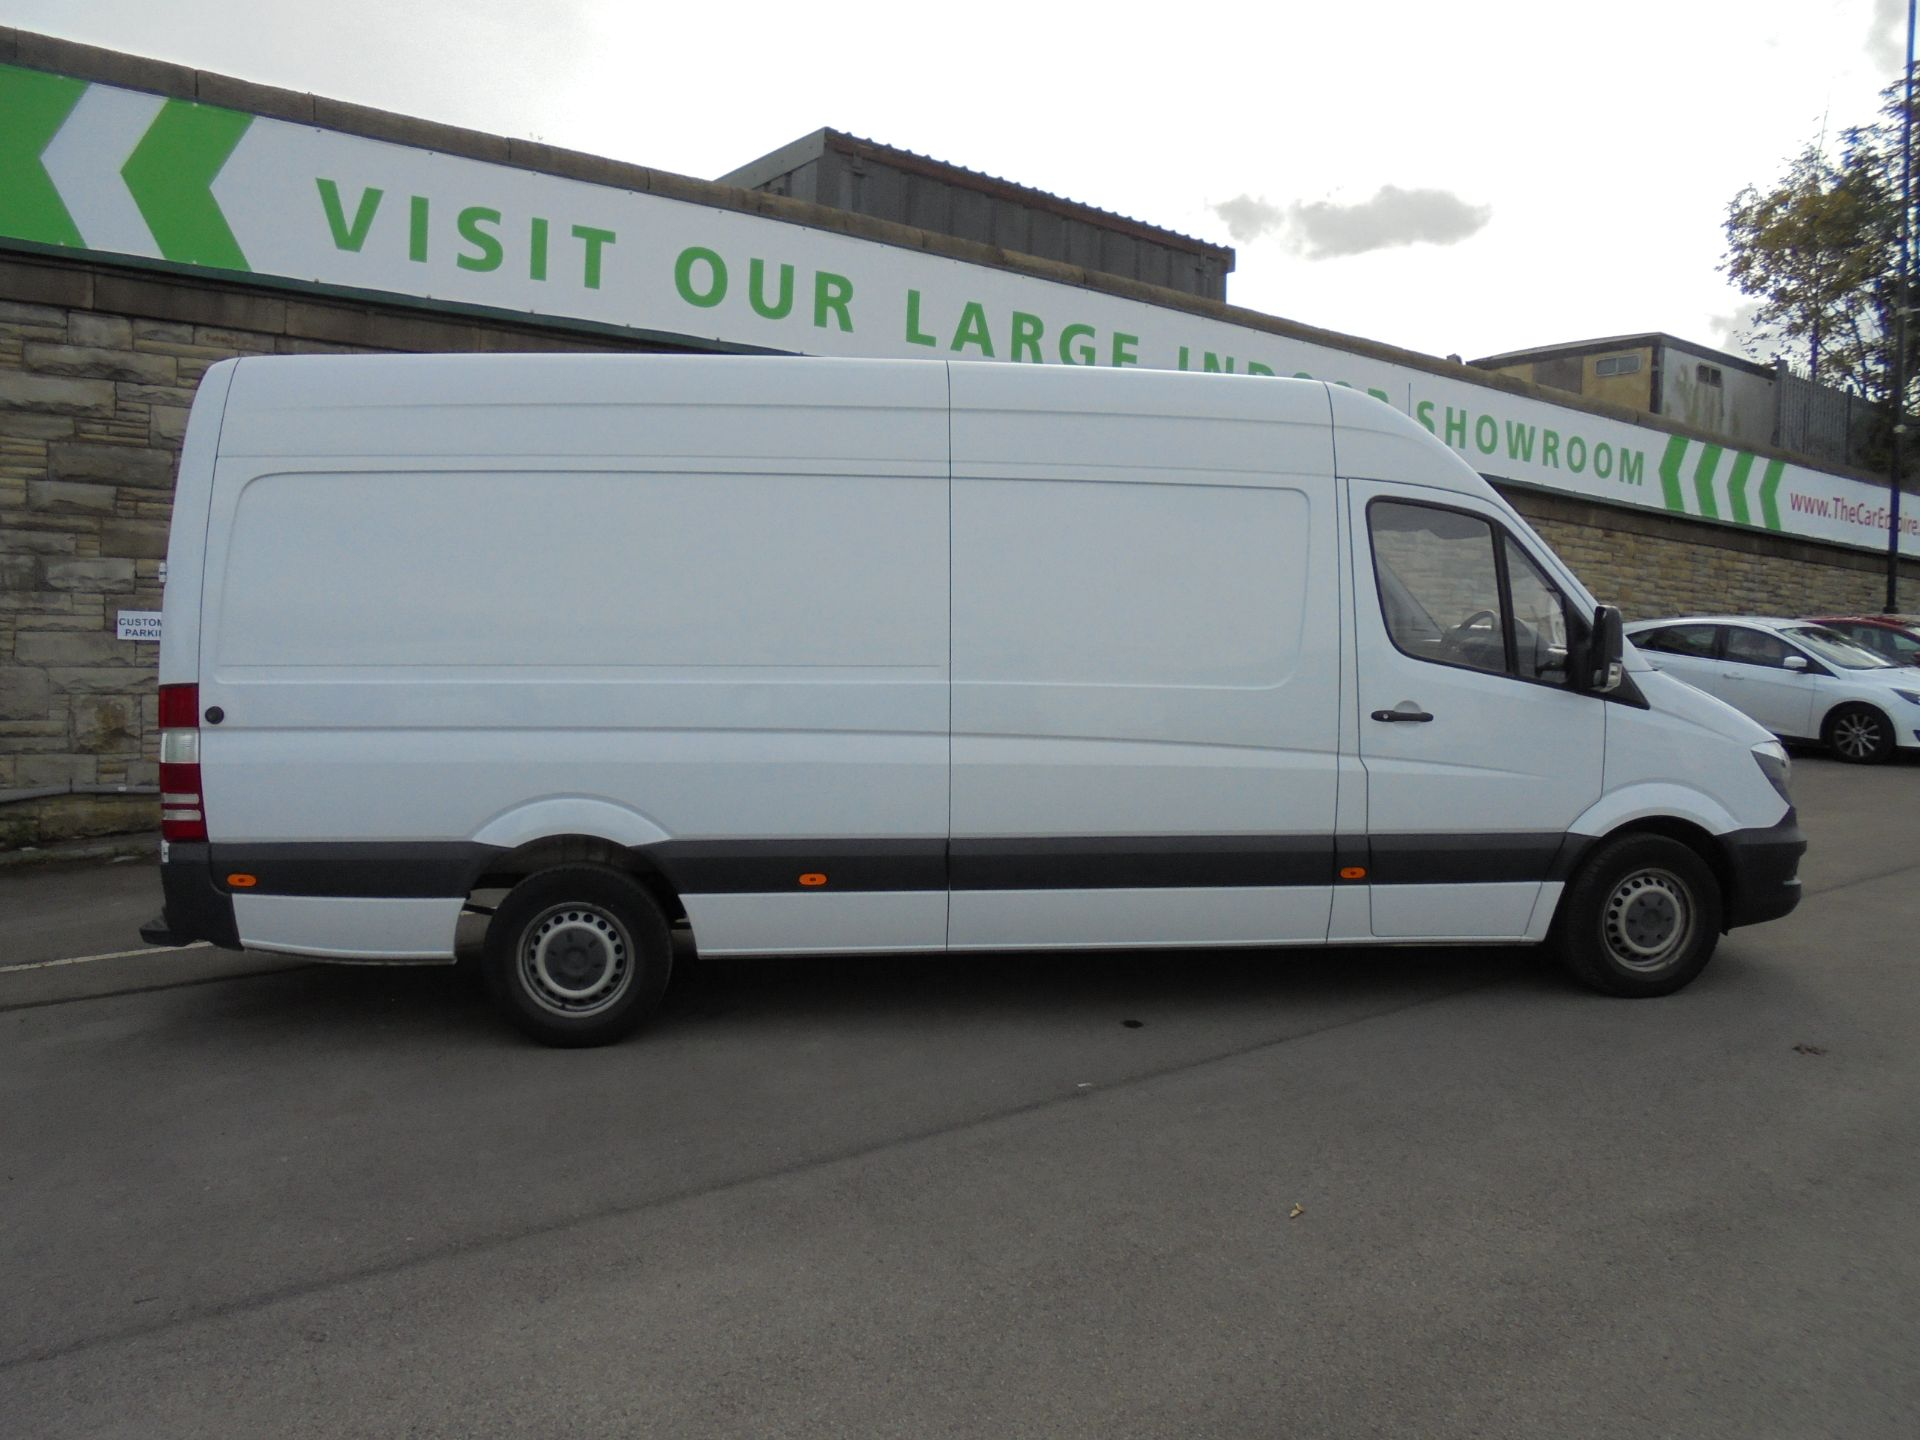 2017 Mercedes-Benz Sprinter 3.5T High Roof Van LWB (KW17JCO) Image 8